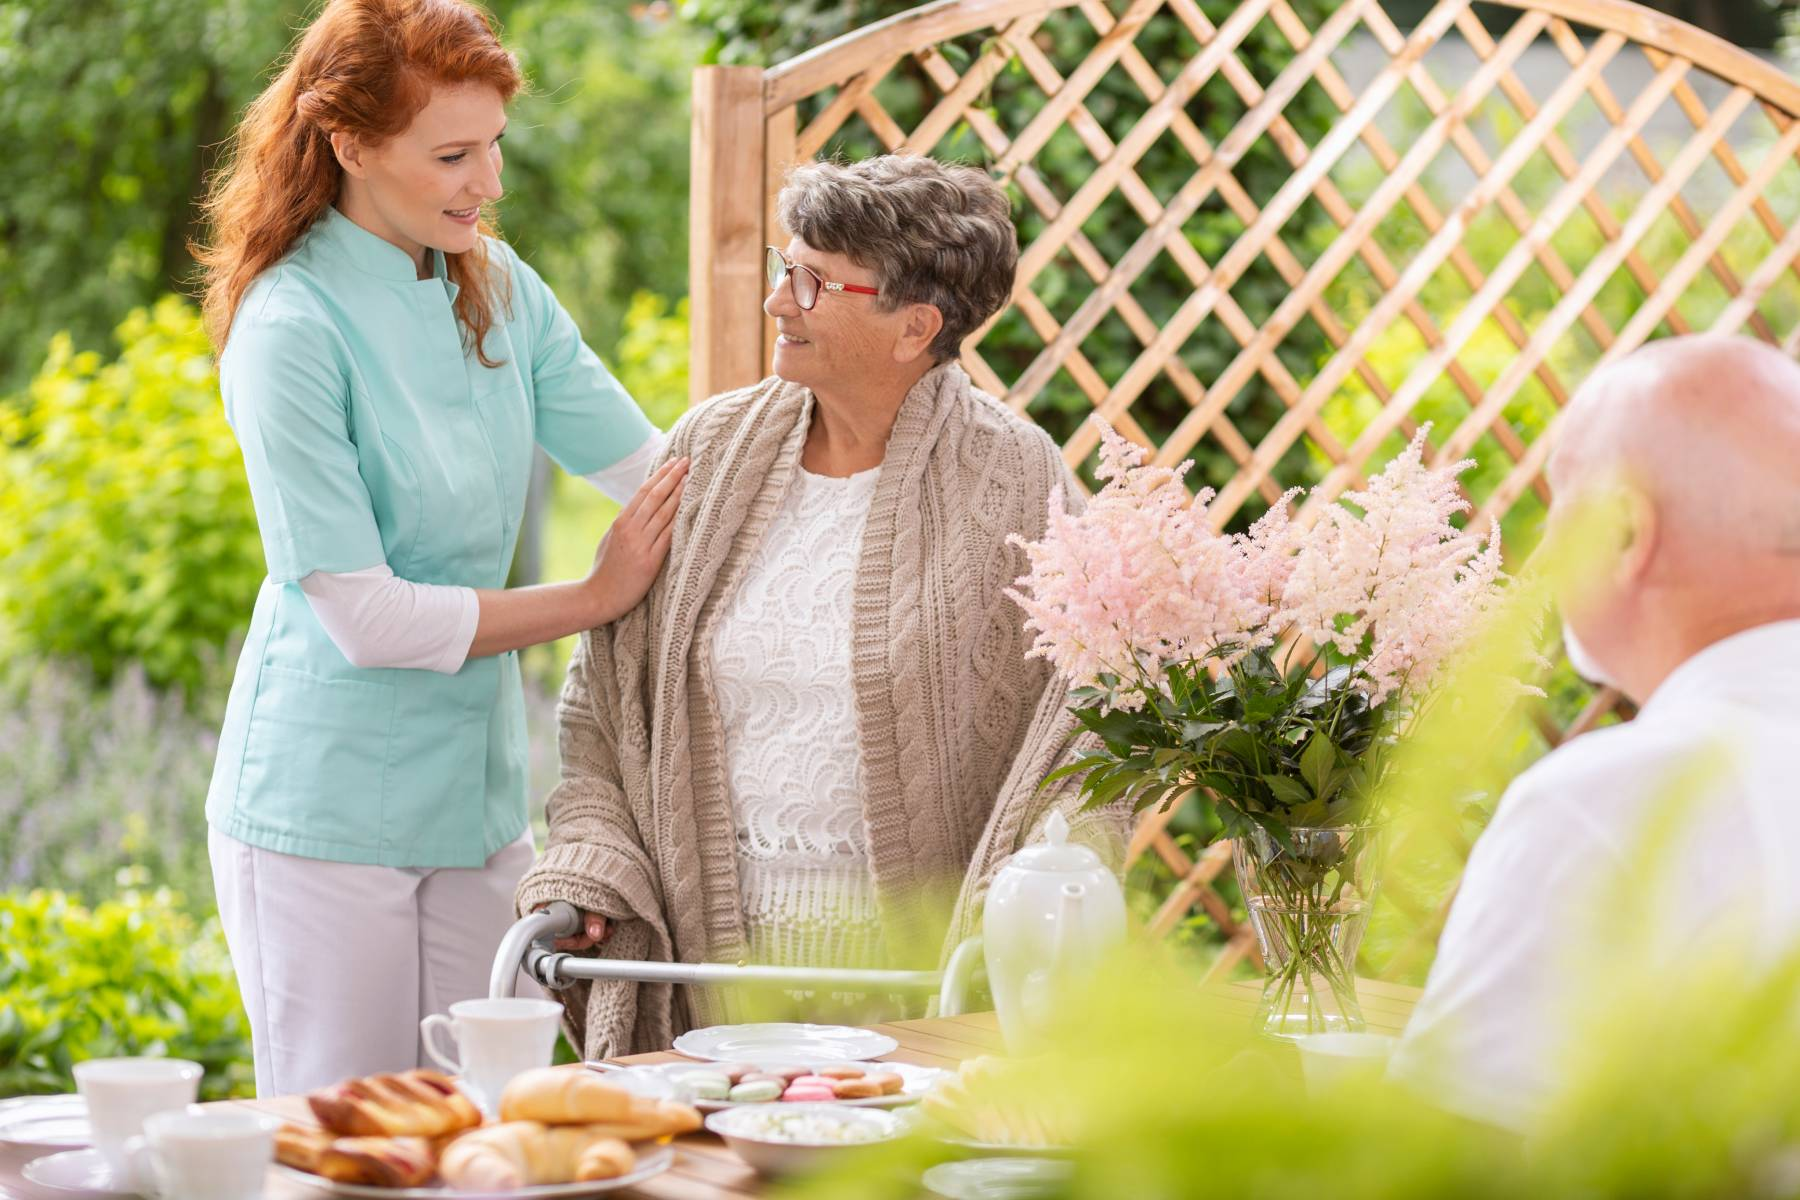 senior receiving help from a health care worker at an assisted living community